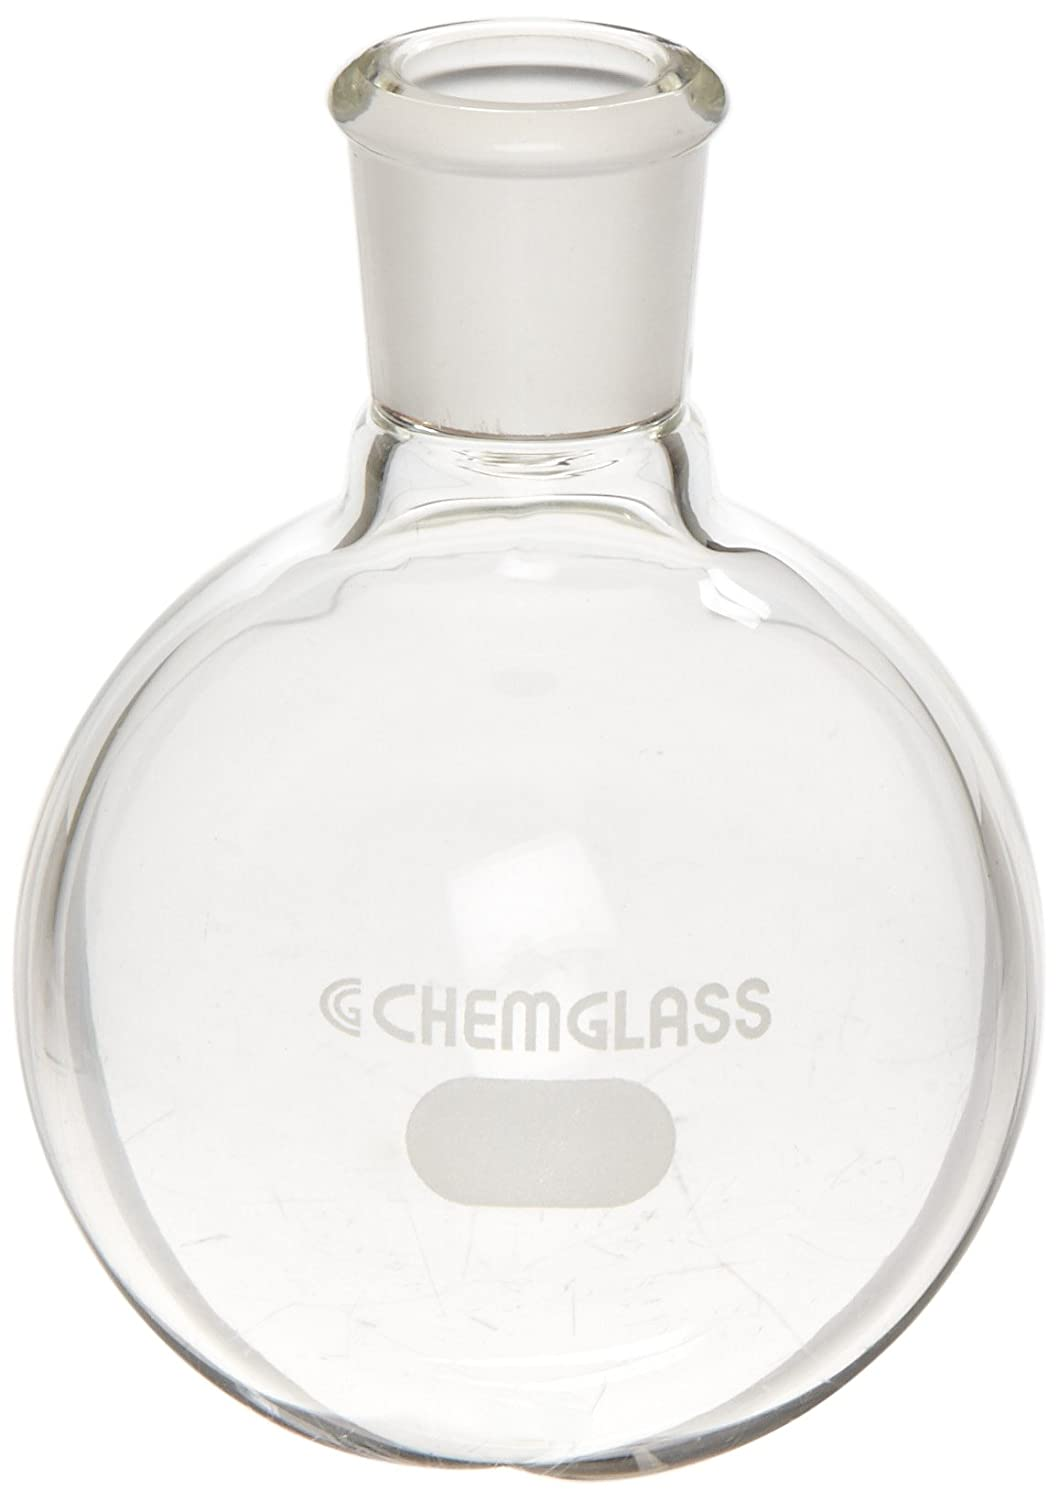 Chemglass CG-1506-90 Glass 100mL Heavy Wall Single Neck Round Bottom Flask,  with 14/20 Standard Taper Outer Joint: Science Lab Boiling Flasks:  Amazon.com: ...